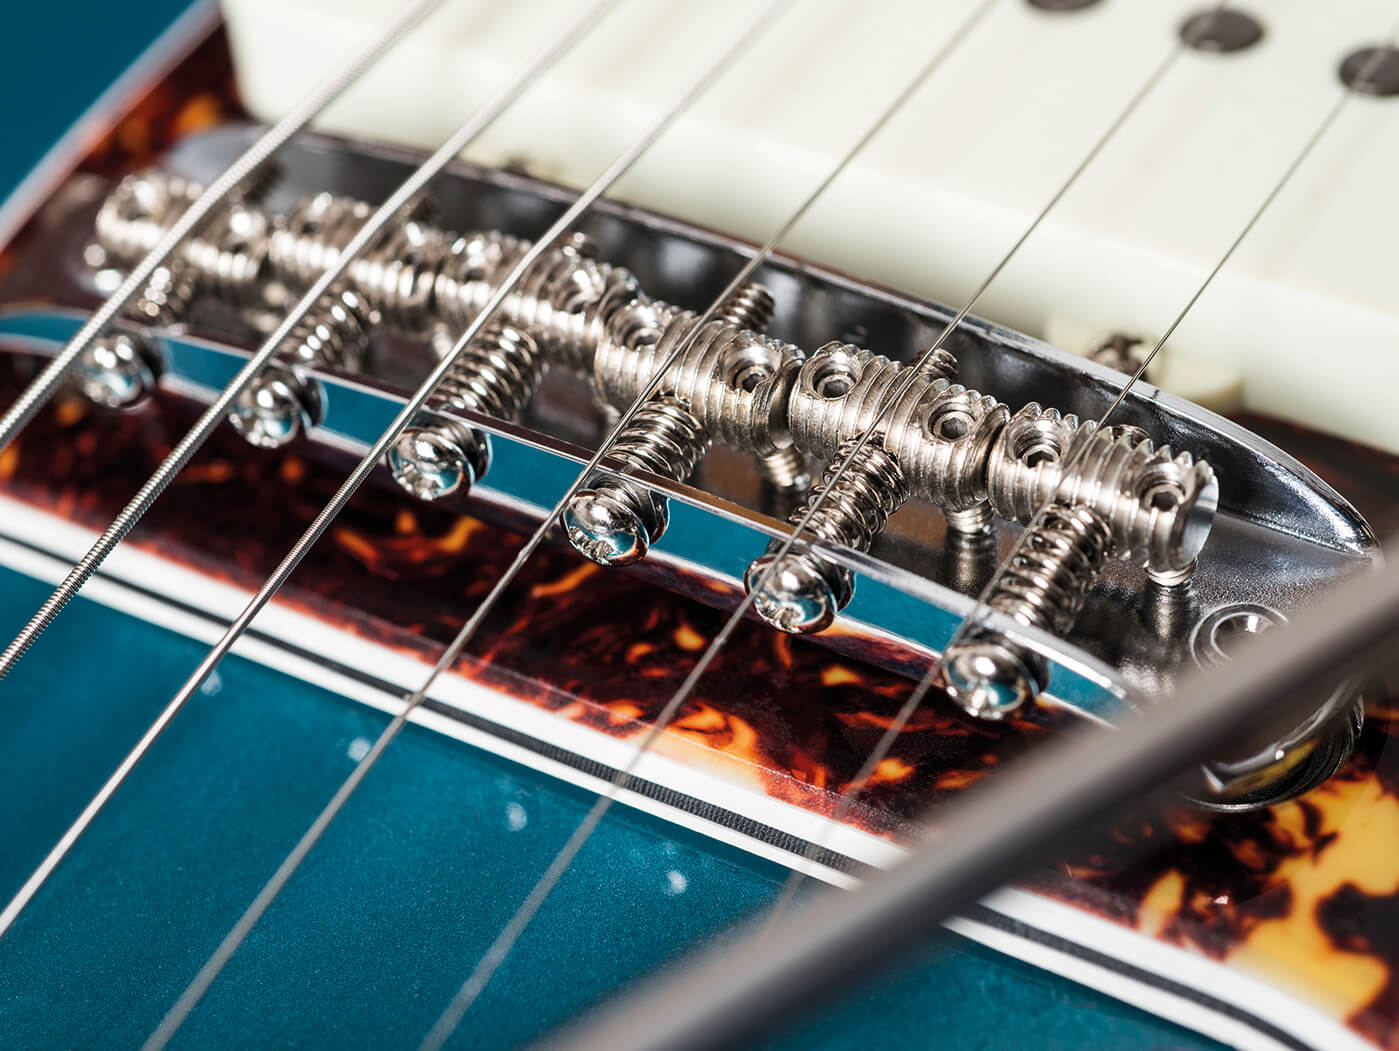 26 essential mods for Jazzmasters, Jaguars and other offset